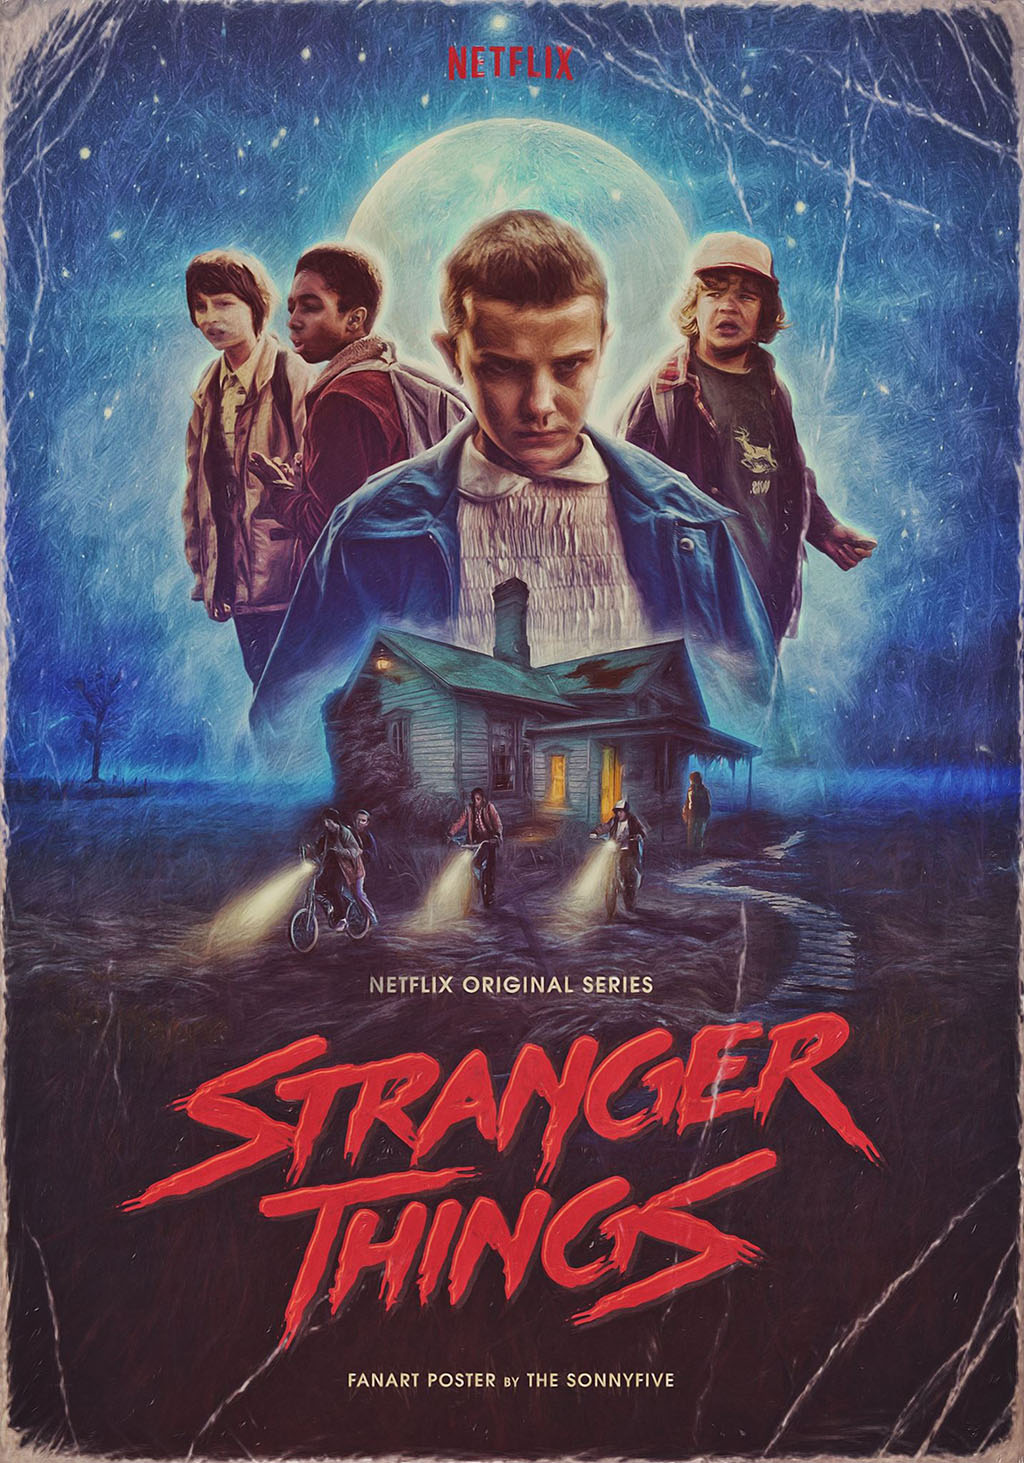 Stranger Things official poster